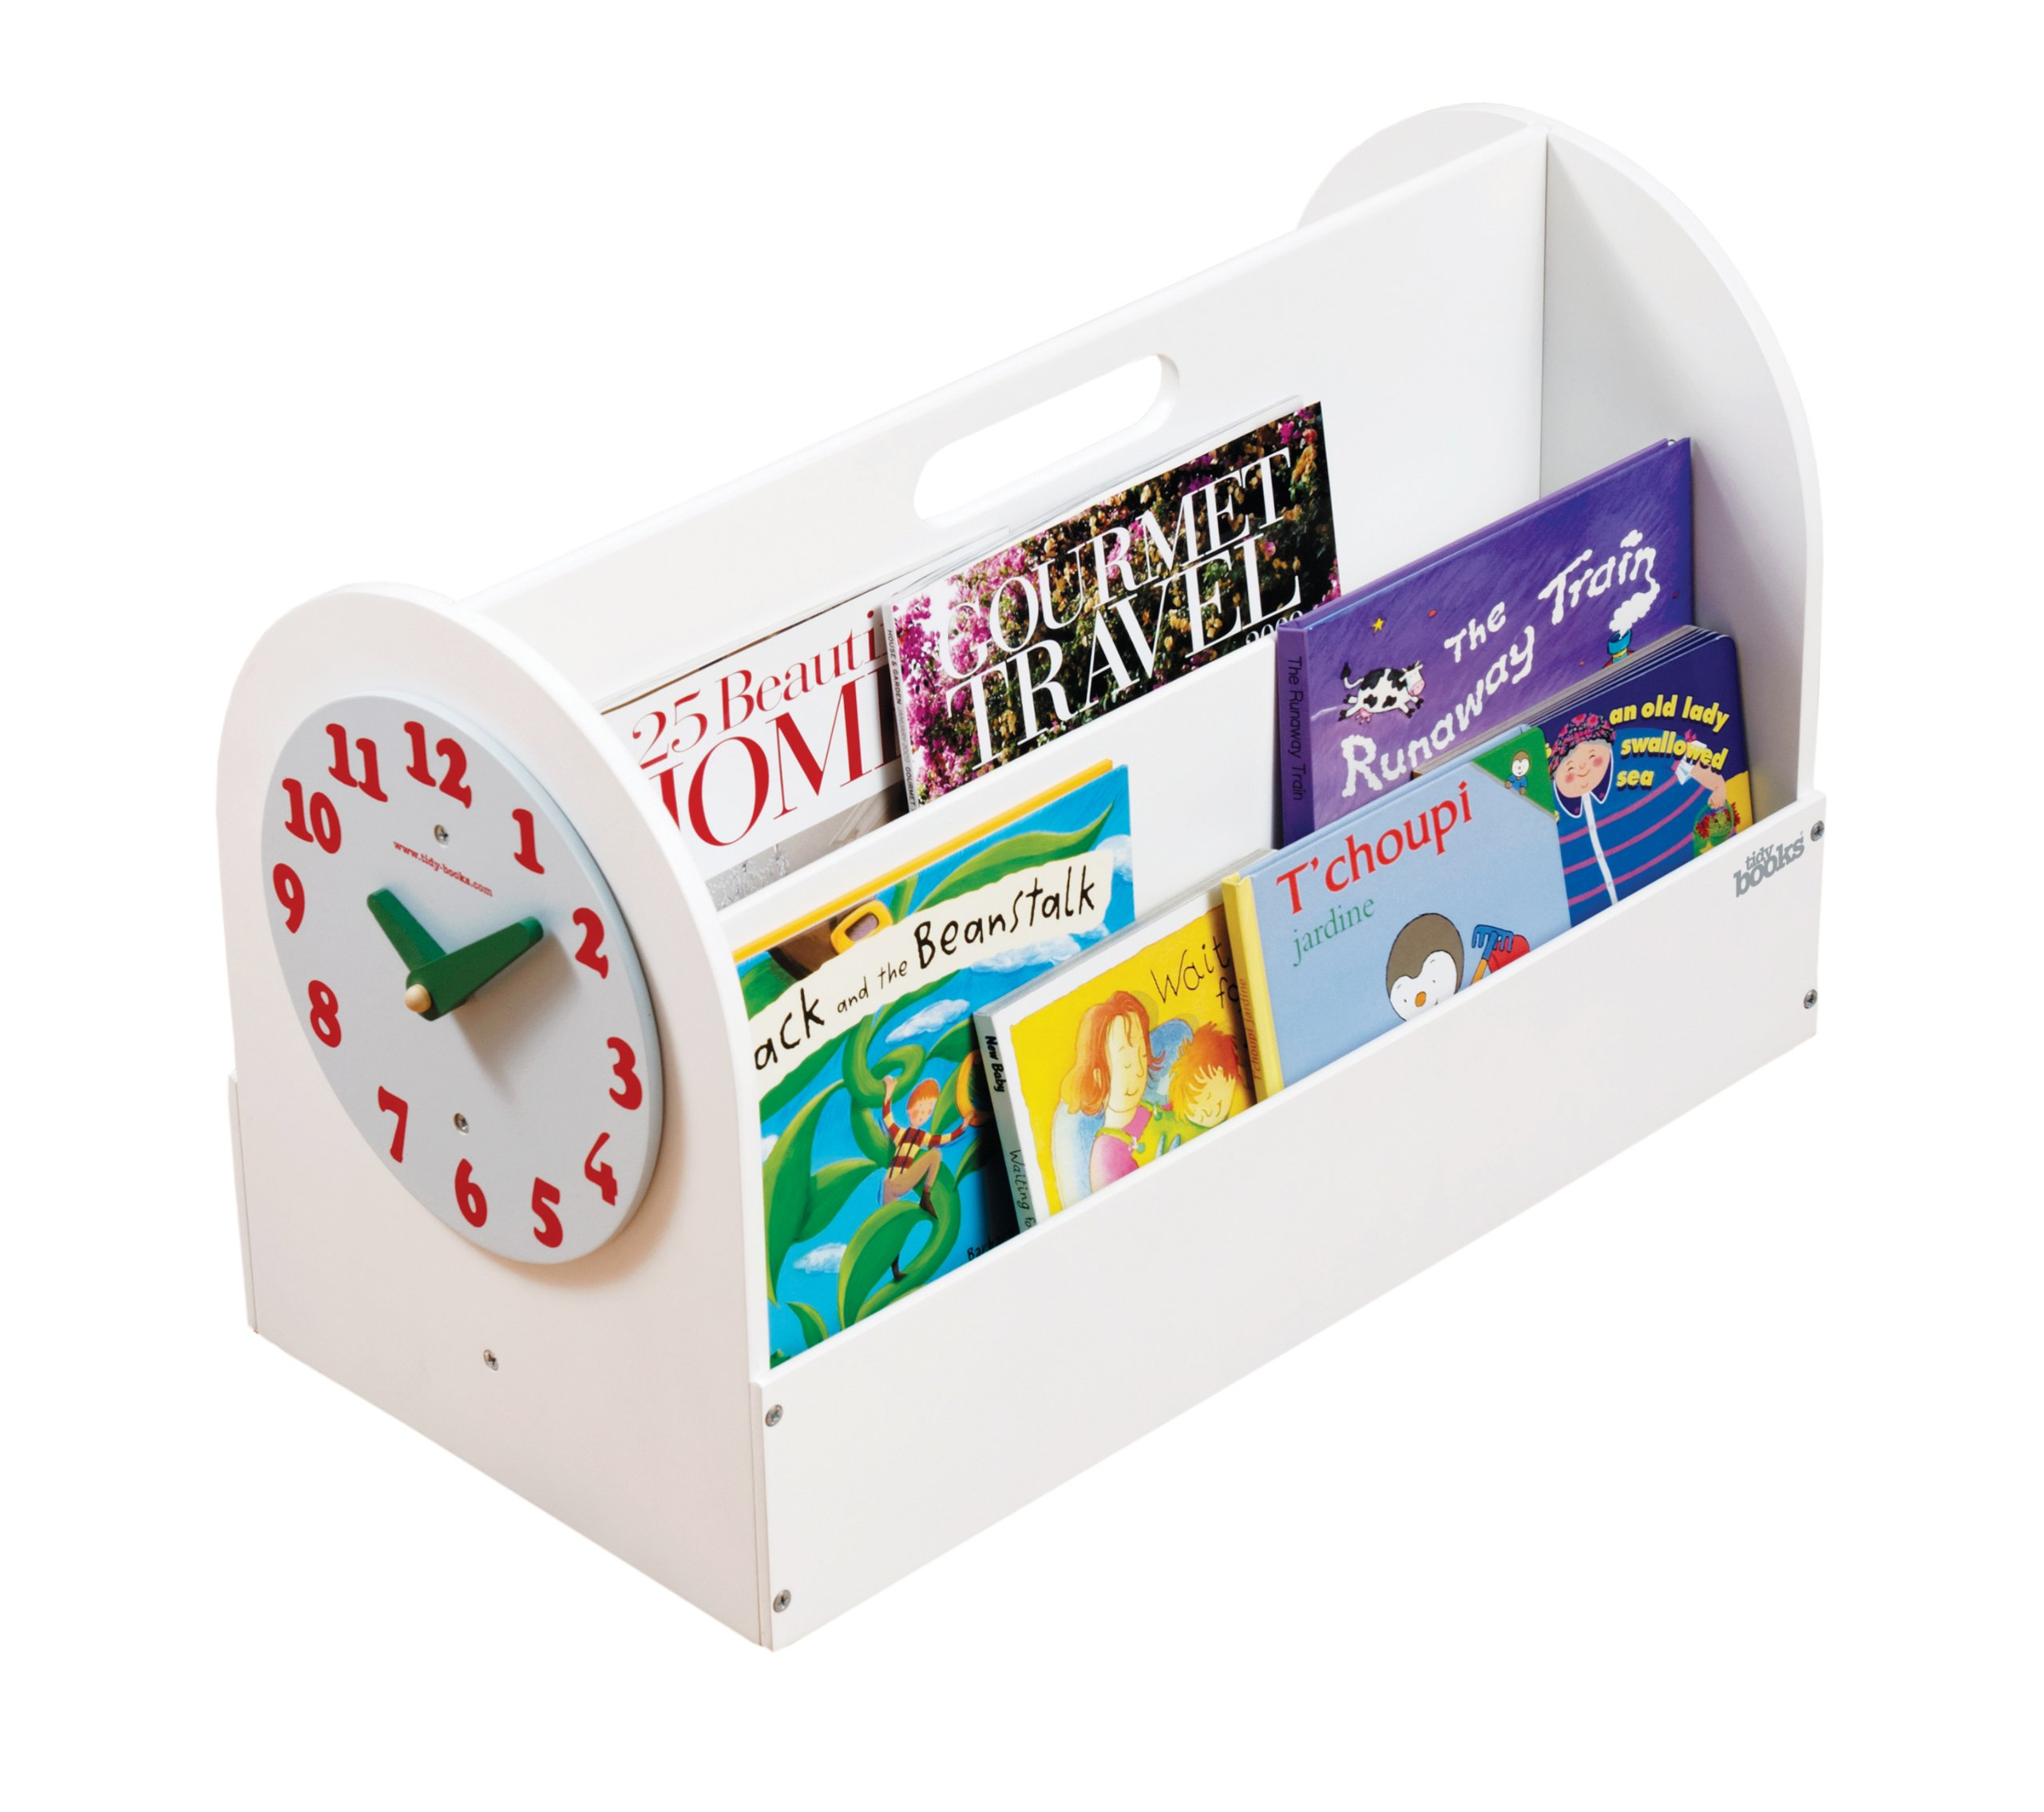 Tidy Books -The Original Kid's Book Box in White - Book Storage and Book Display - Wooden Box for Kids Books - 13.8in L x 21.6in W x 12.2in D